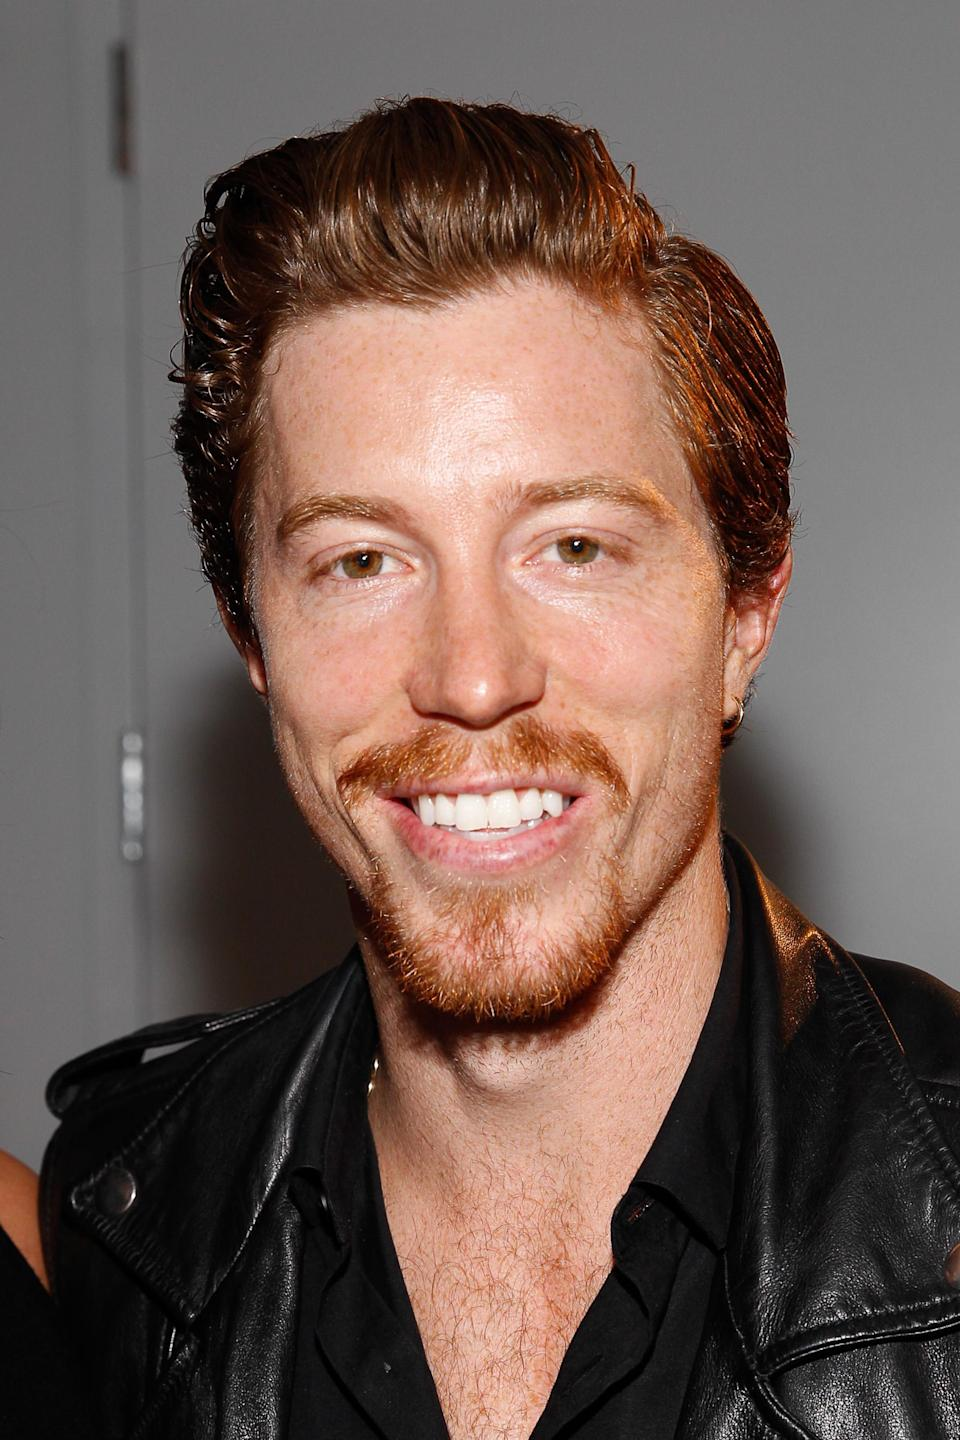 <p>Shaun White seen at MBFW Spring/Summer 2015 – Zac Posen fashion show at 3 East 54th Street on Monday, Sept 08, 2014 , in New York. (Photo by Mark Von Holden/Invision/AP) </p>